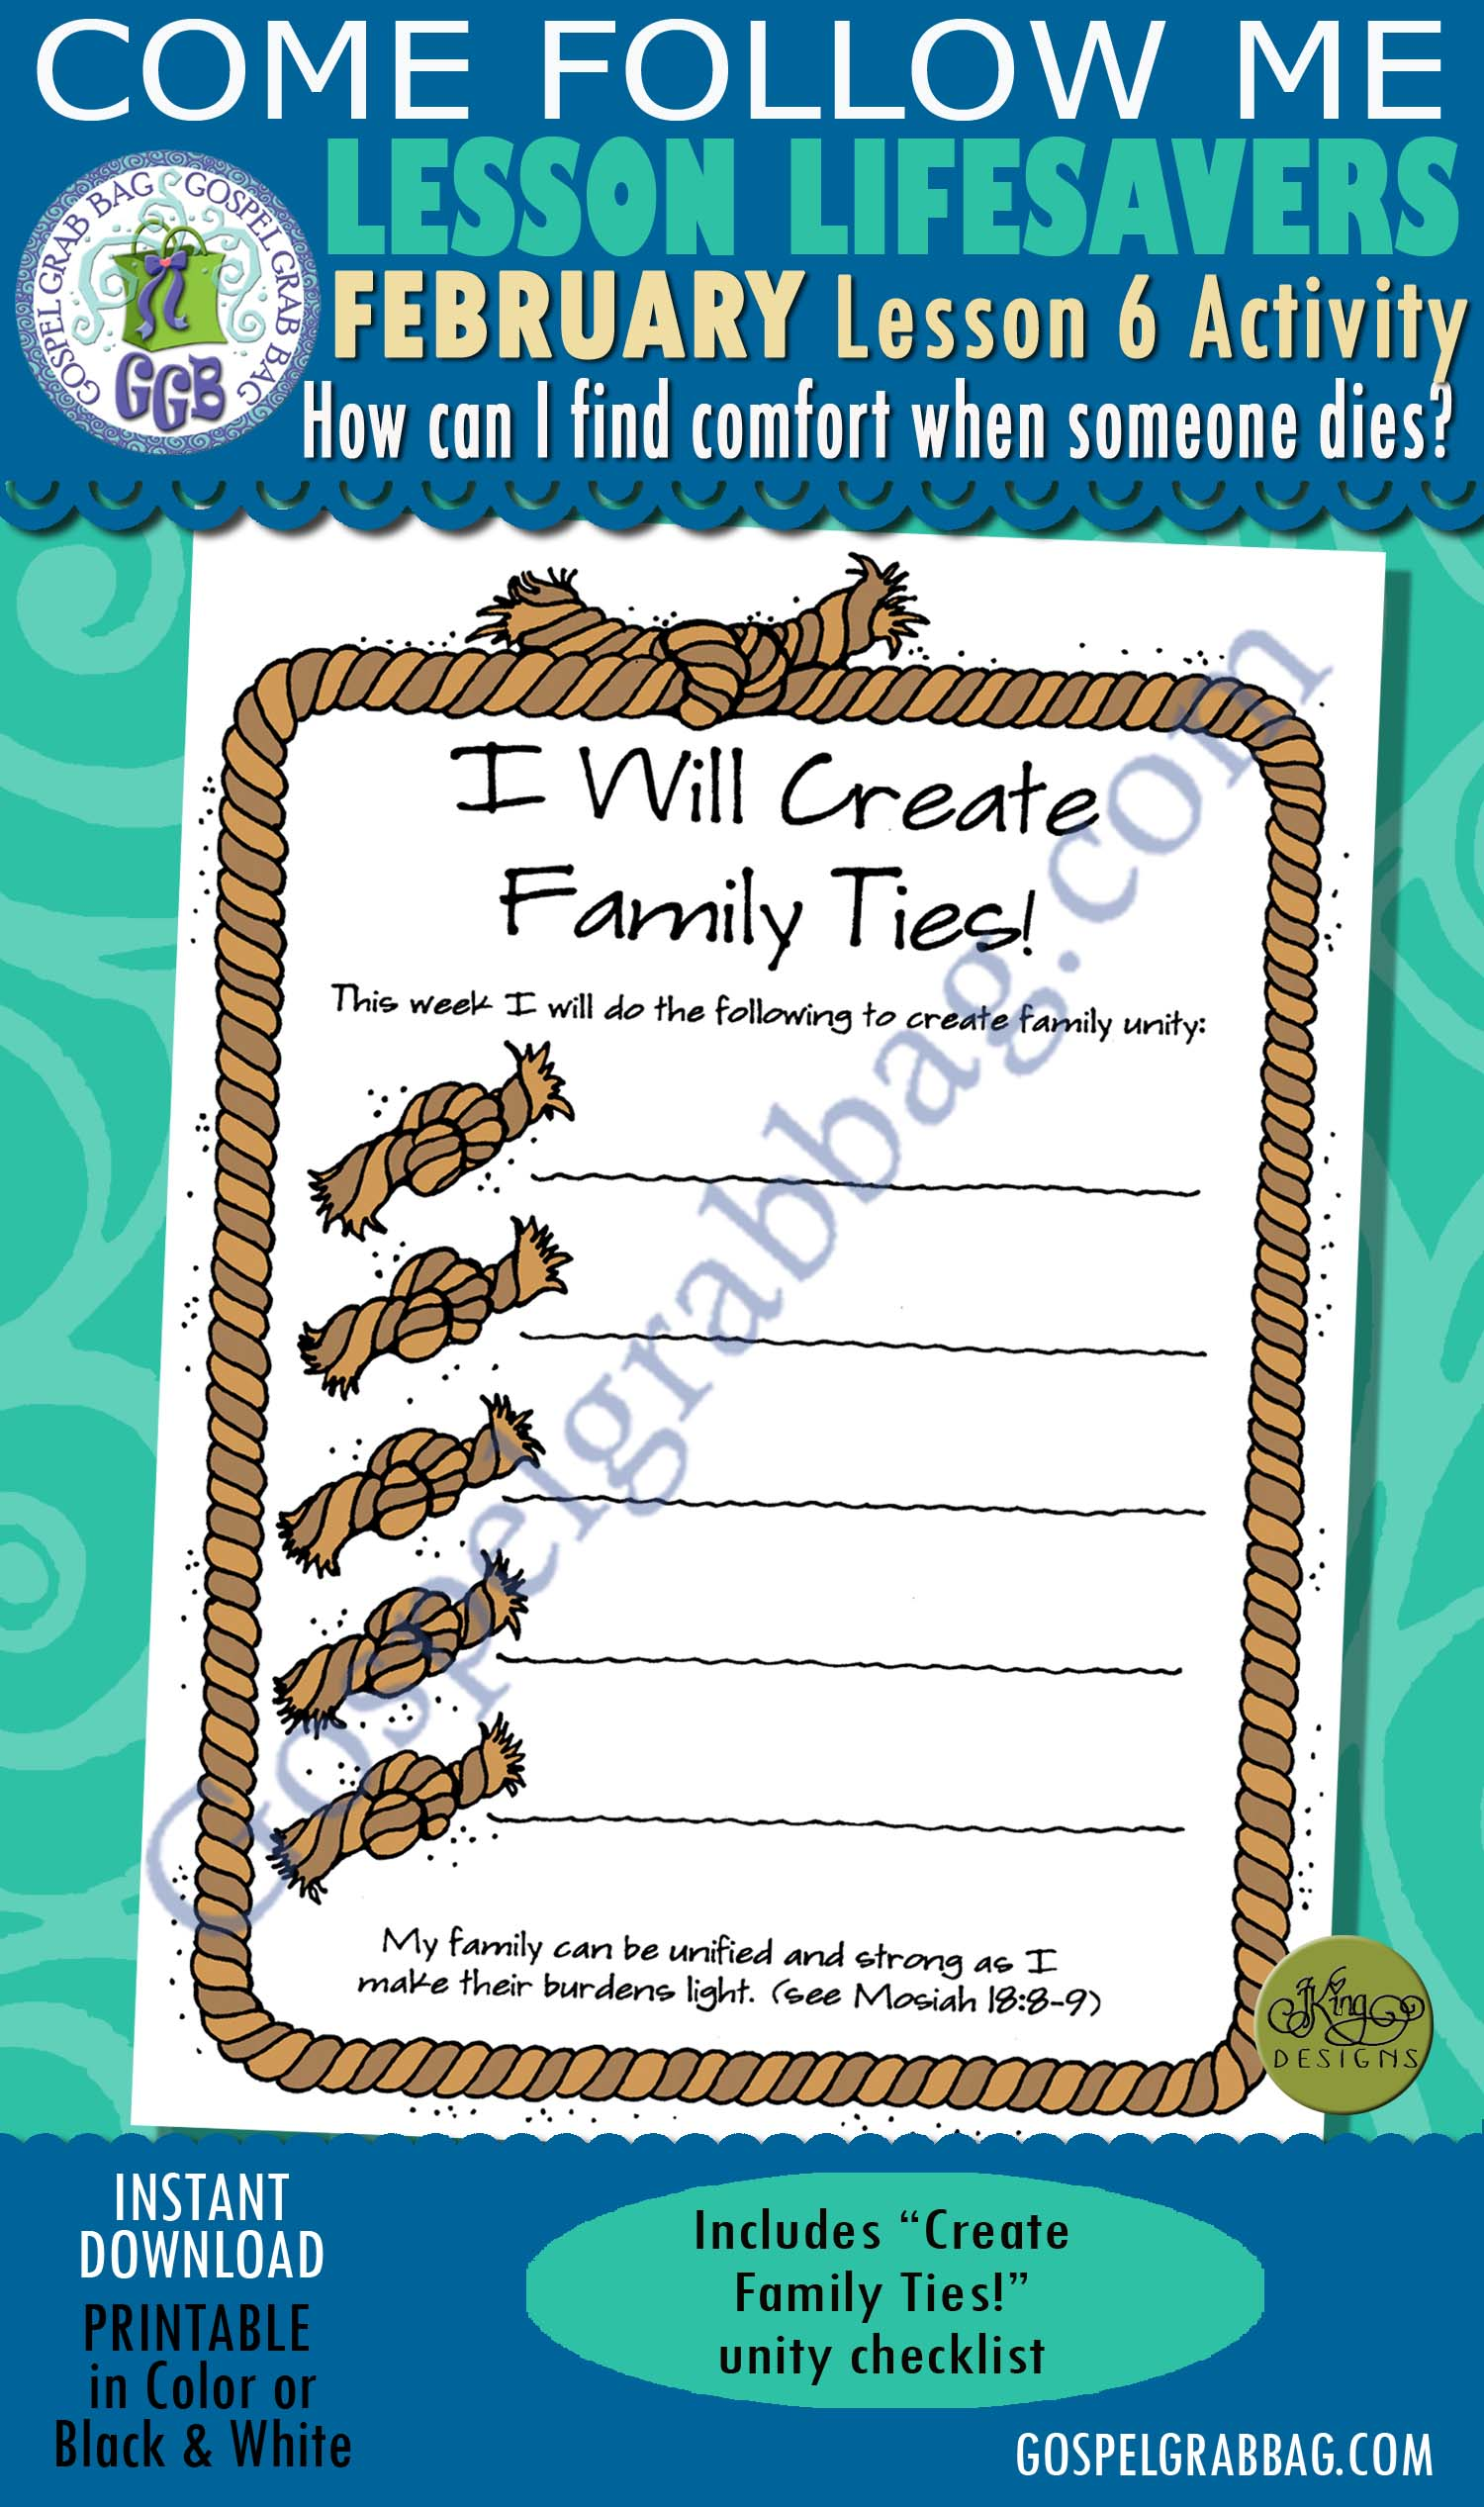 "$1.75 February Lesson 6 Come Follow Me ""How can I find comfort when someone I care about dies?"" ACTIVITY: Create Family Ties! Unity Checklist"